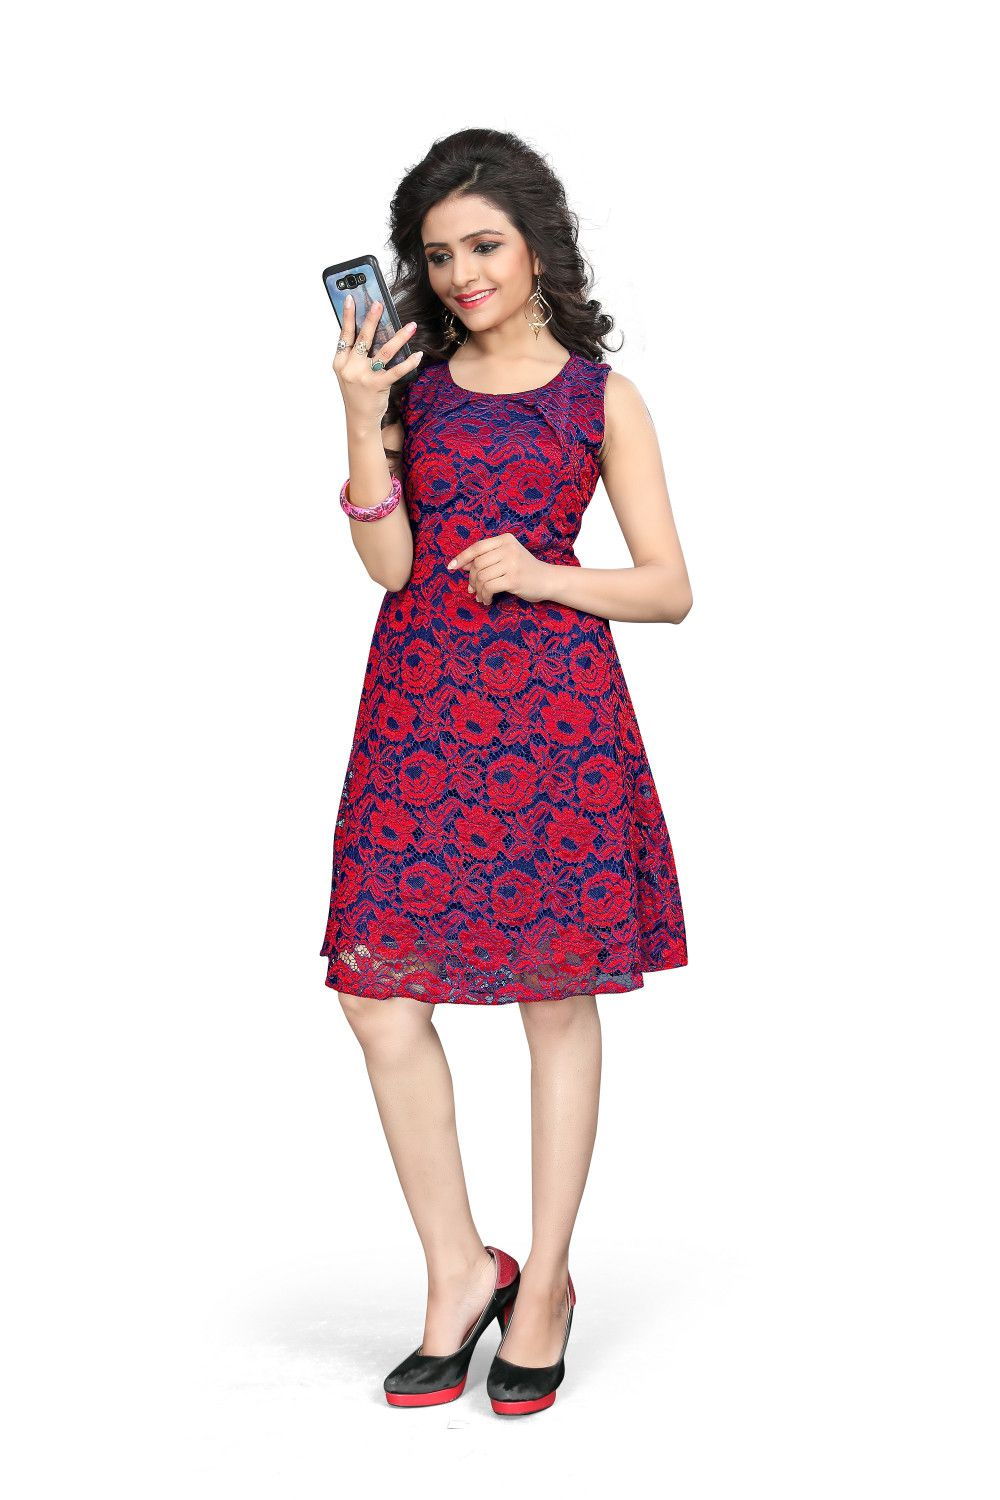 82cf0c8d66e Om Fashion New Arrival Red jacquard Westrn Wear Dresses - Buy Om Fashion  New Arrival Red jacquard Westrn Wear Dresses Online at Low Price - Snapdeal